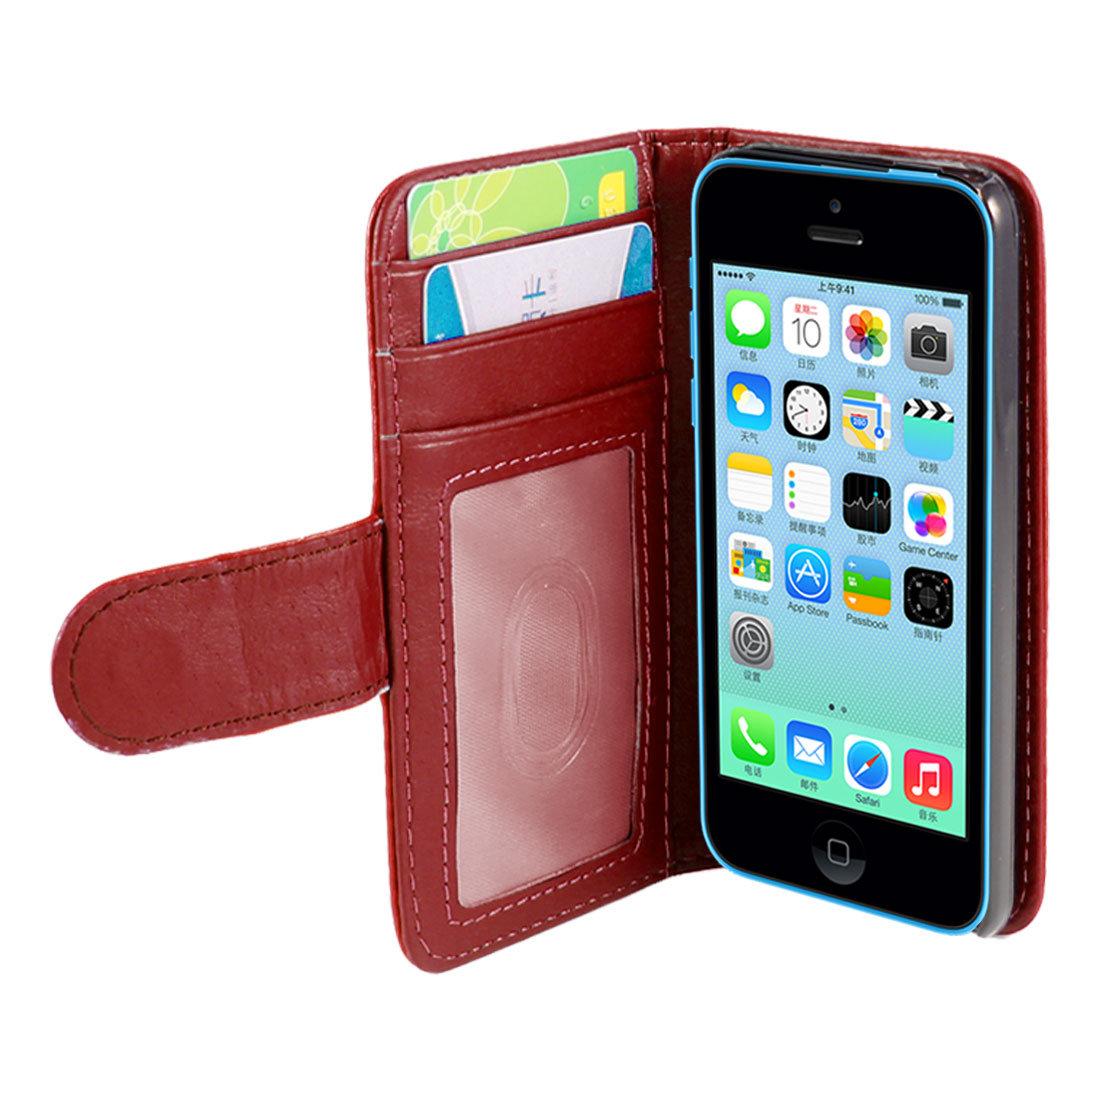 Solid Red Faux Leather Flip Pouch Wallet Case Cover for Apple iPhone 5C